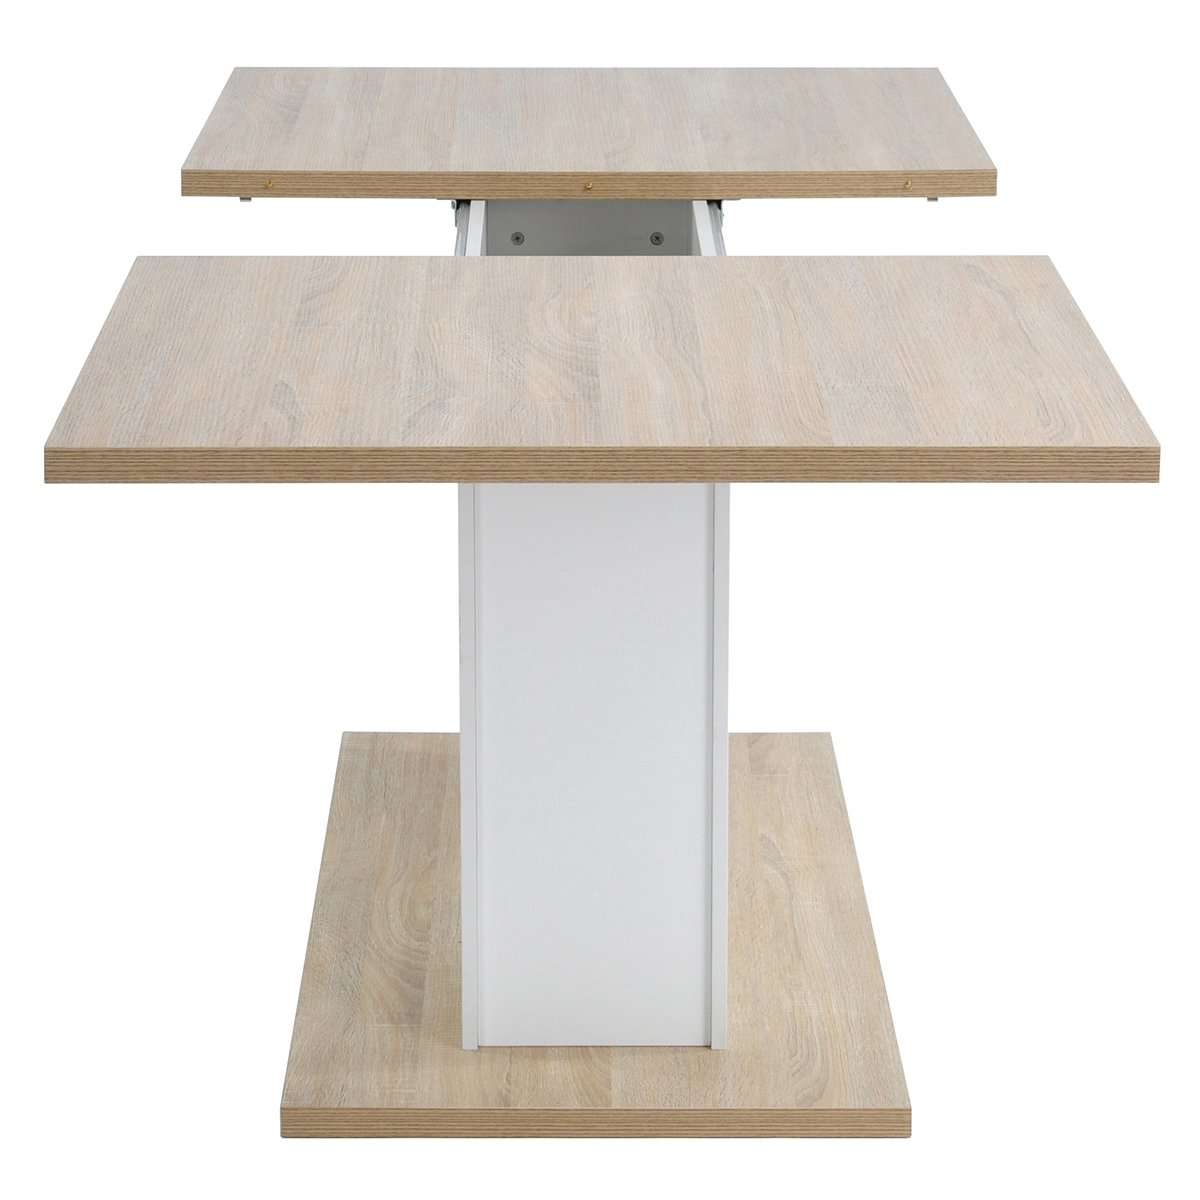 Extendable Rectangular Dining Table, Mltifunction Space Saving Wood Table (Extendable Beech Table) by HOMY CASA (Image #6)